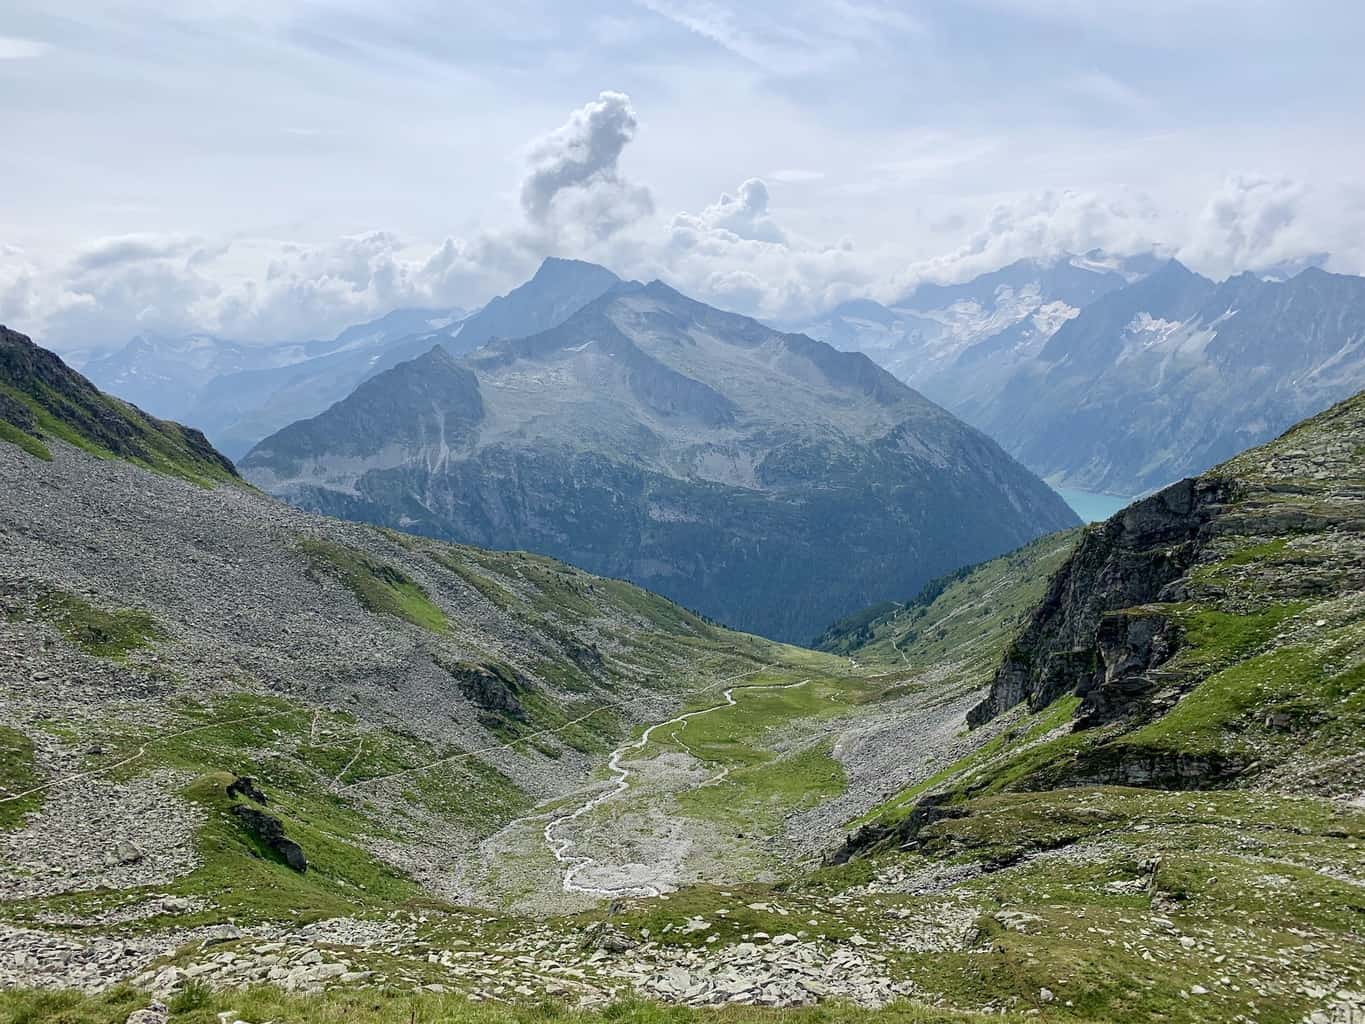 The Friesenberghaus Hike of the Zillertal Valley